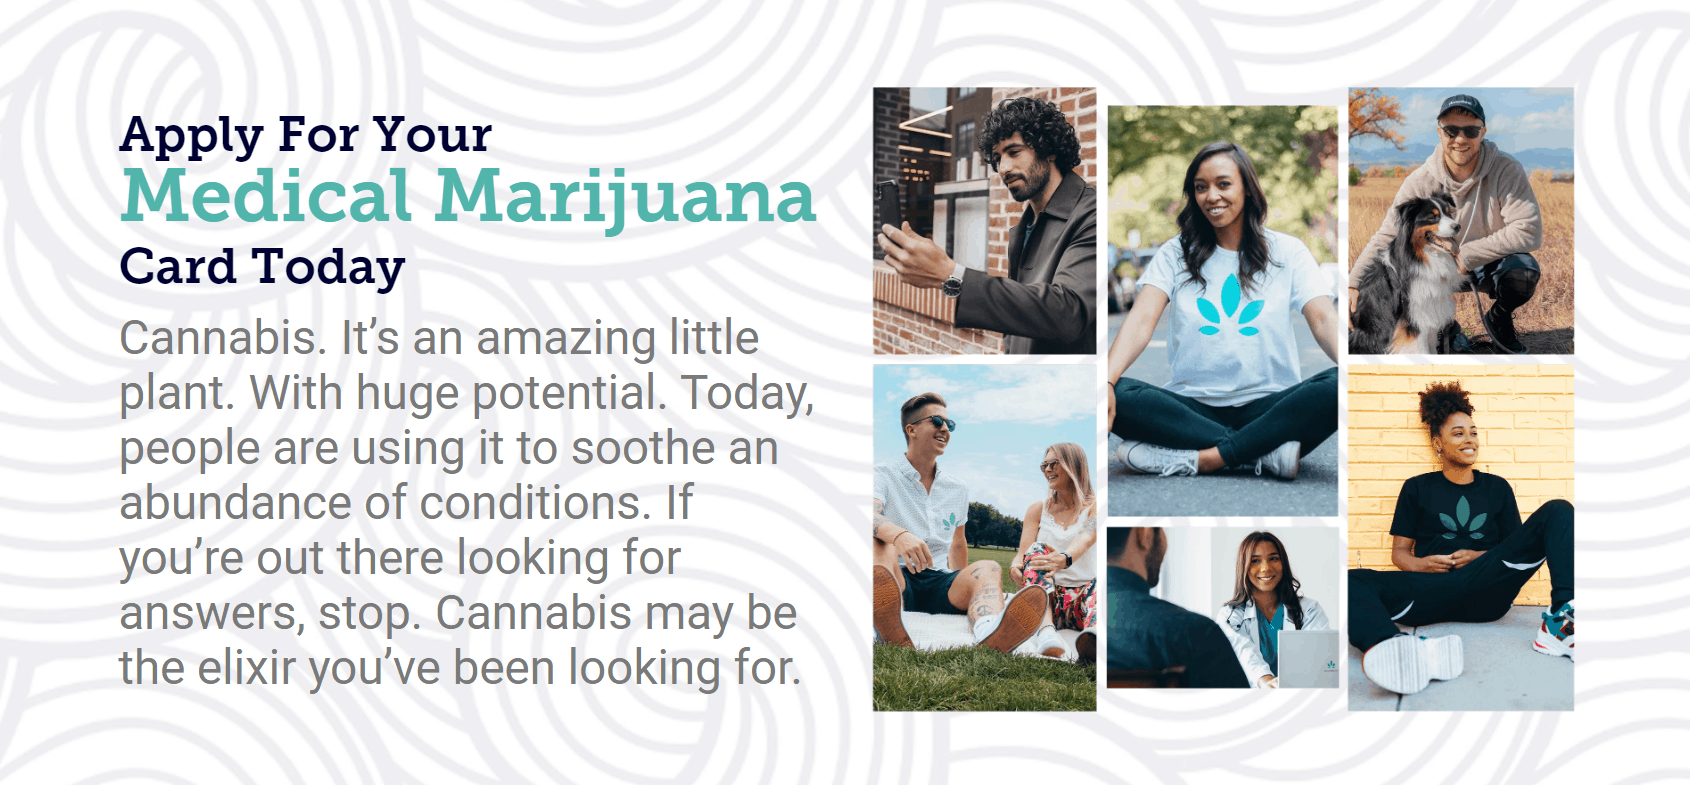 Veriheal Cannabis Doctors Coupons Apply Today